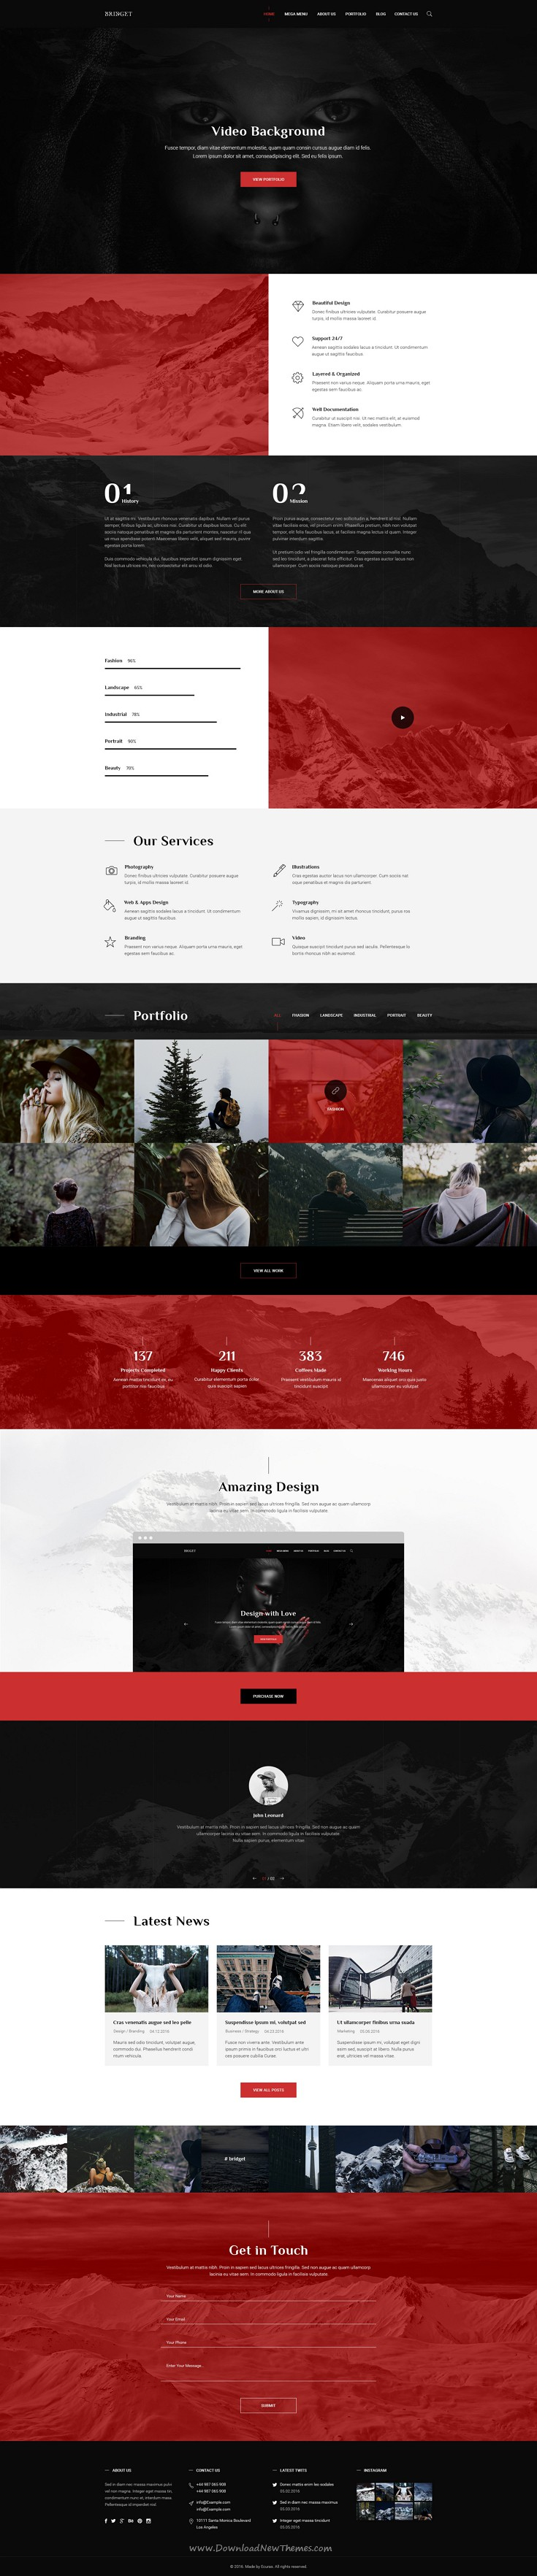 Last Psd Psd Templates Organizing And Template